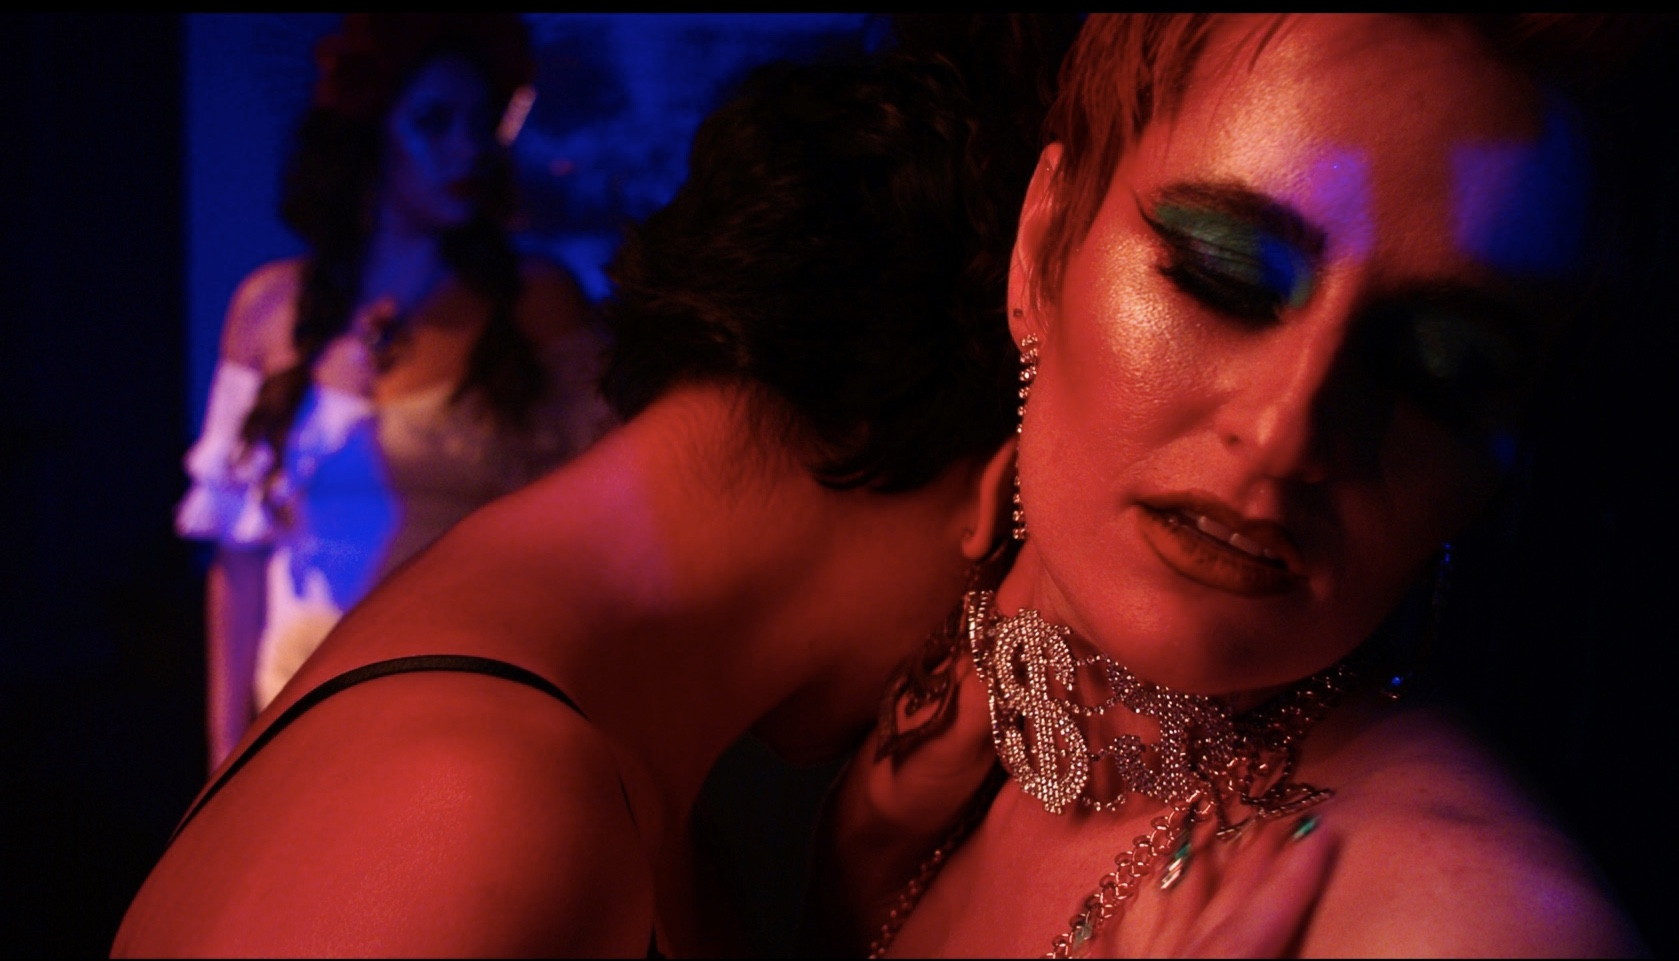 Photo Credit: Still from Music Video